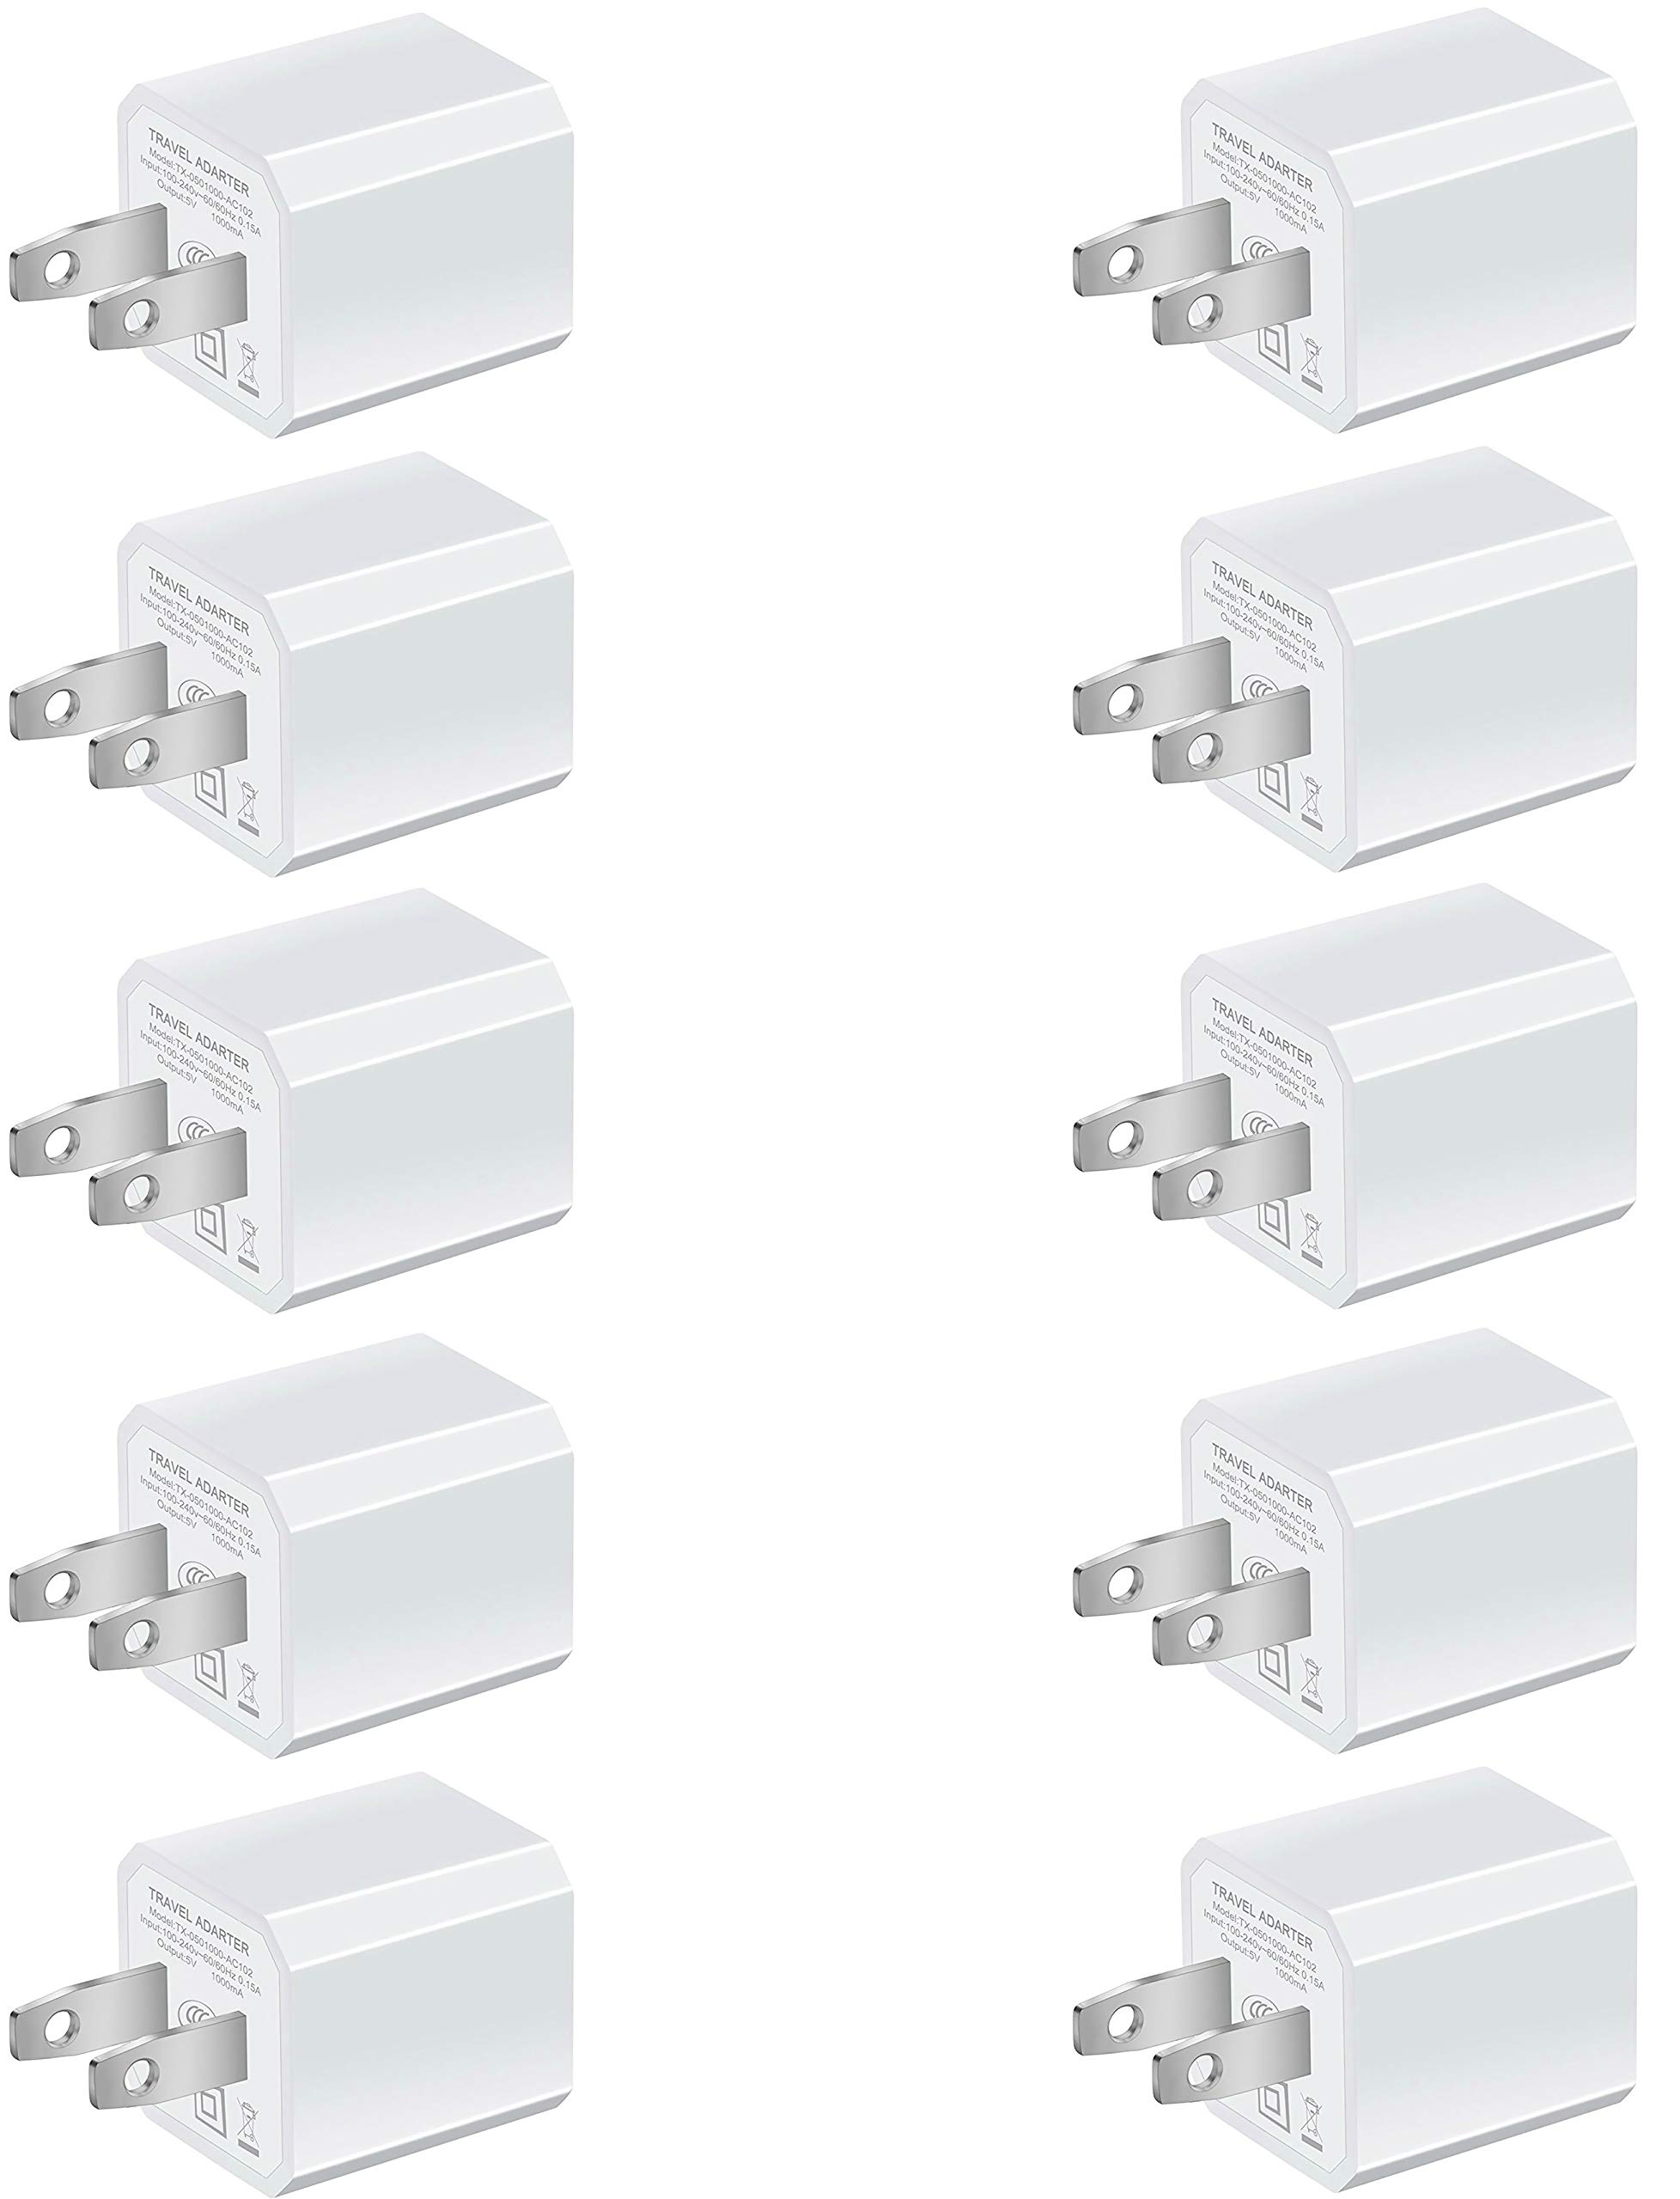 Boost Chargers 5W USB Power Adapter [10-Pack] Wall Charger 1A Cube for Plug Outlet Compatible for iPhone 8 / X / 7 / 6S / Plus +, iPad, Samsung Galaxy, Motorola, HTC, Other Smartphones (White) by Boost